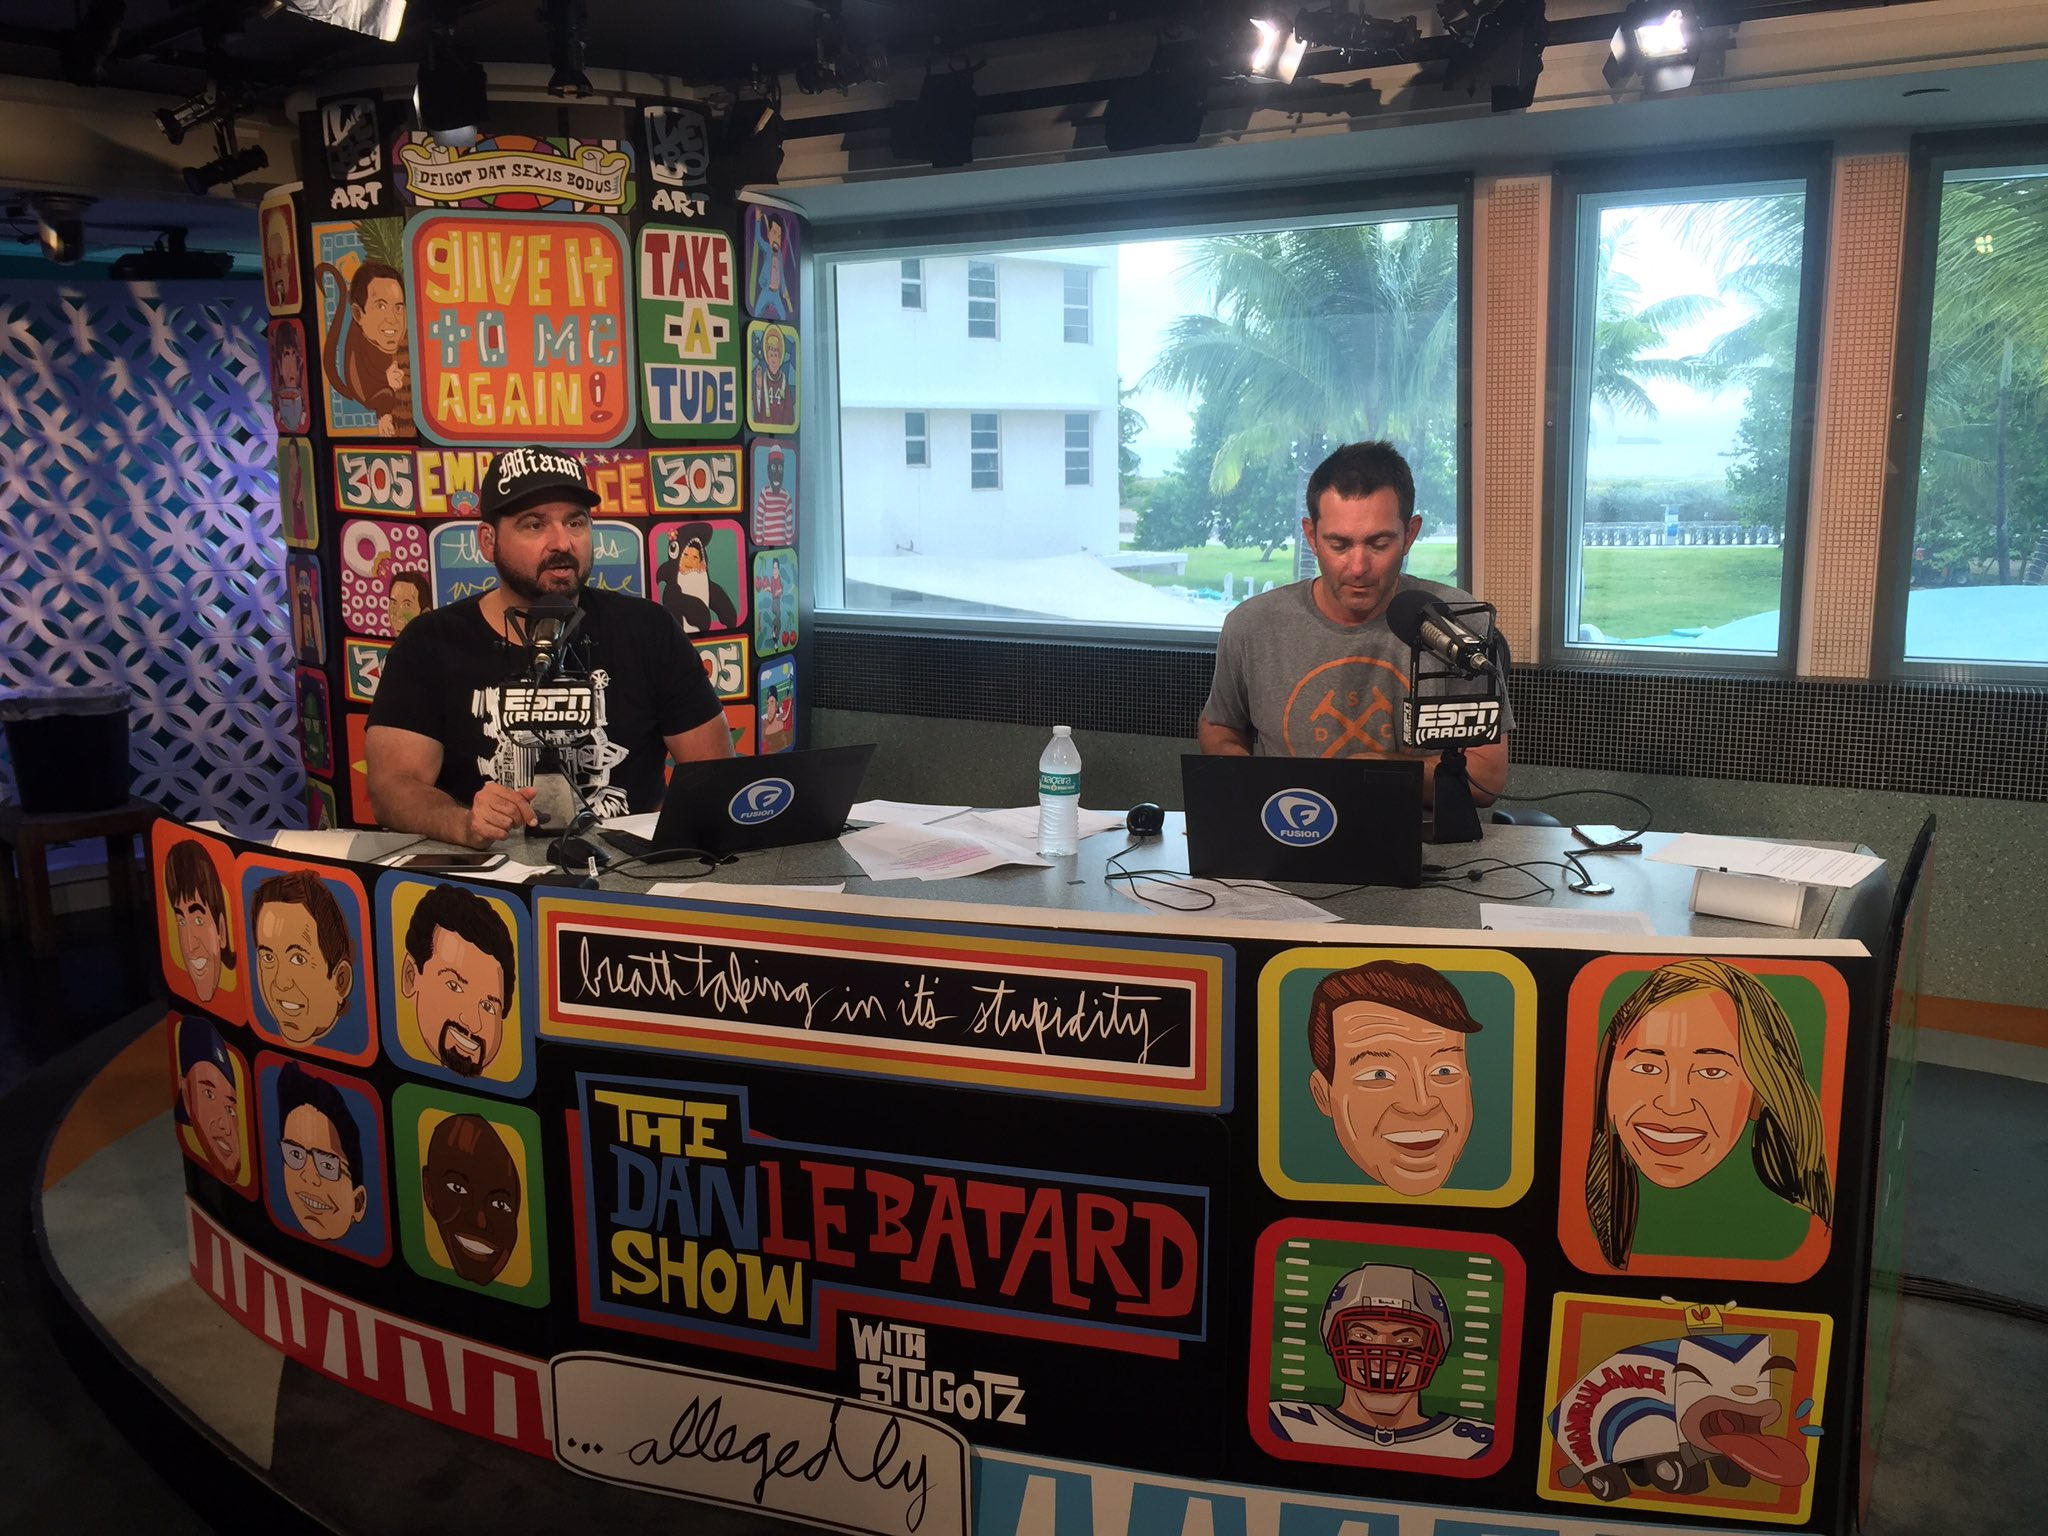 Dan Le Batard Show On Twitter Today Is Our Last Show On